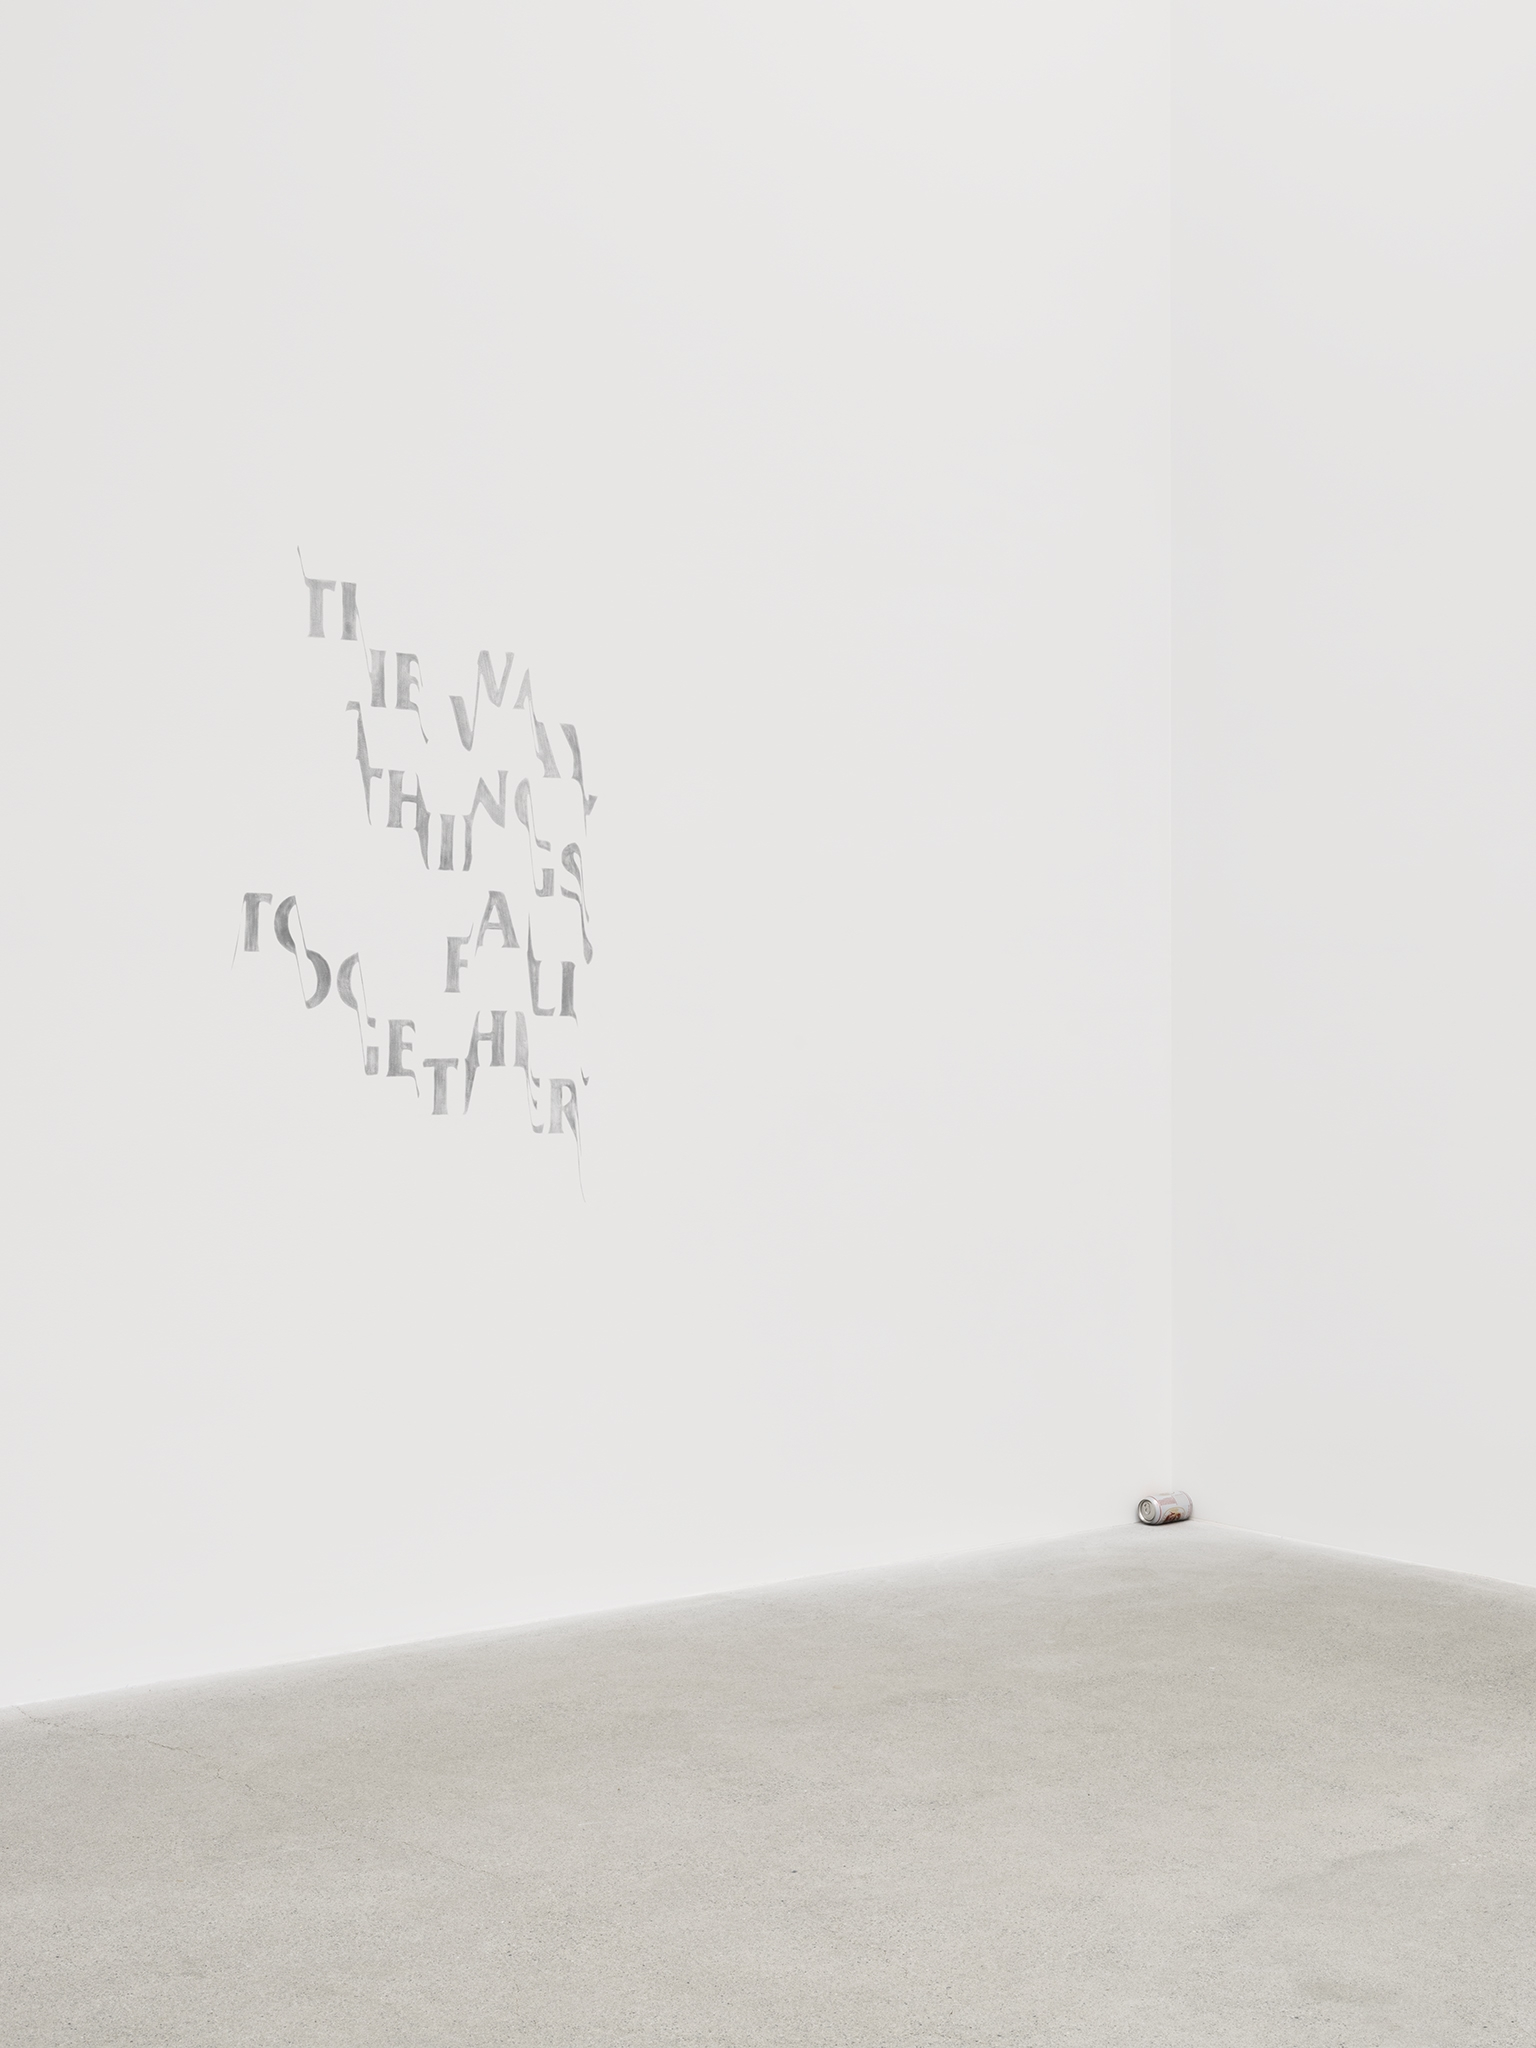 ​Raymond Boisjoly, Clinamen, 2019, lucky lager beer can on wall, 44 x 31 in. (112 x 79 cm) by